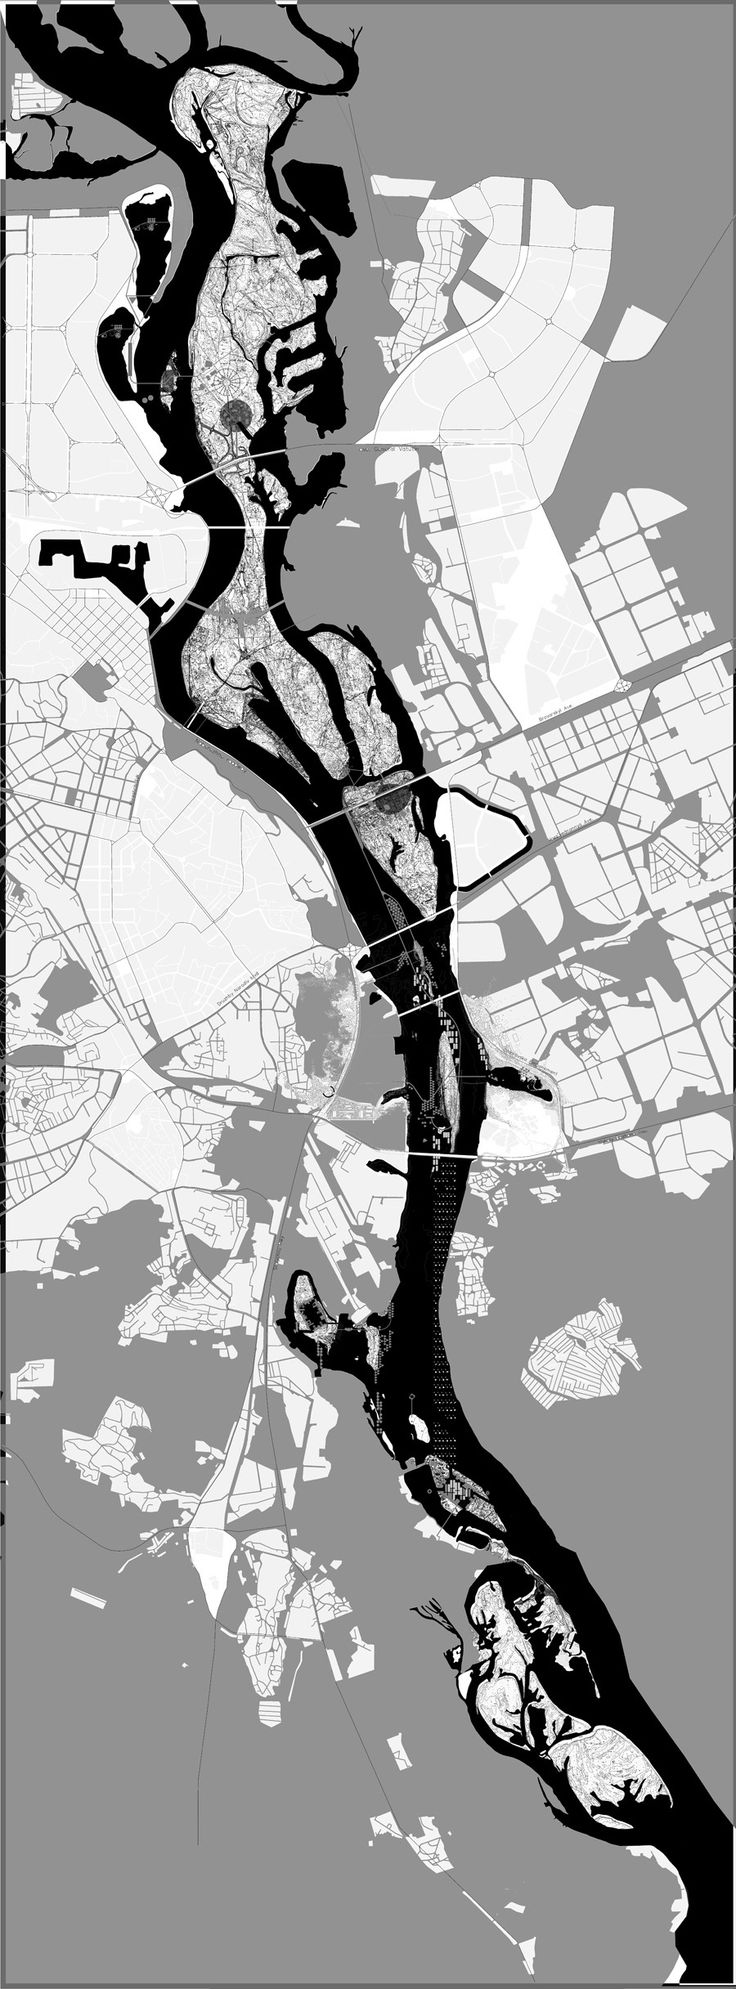 Tactical Archipelago    Shortlisted entry for the Kyiv Islands master plan and concept for the preservation of the islands.  LCLA office is an Architecture studio and international research platform based in Medellín and Cambridge.